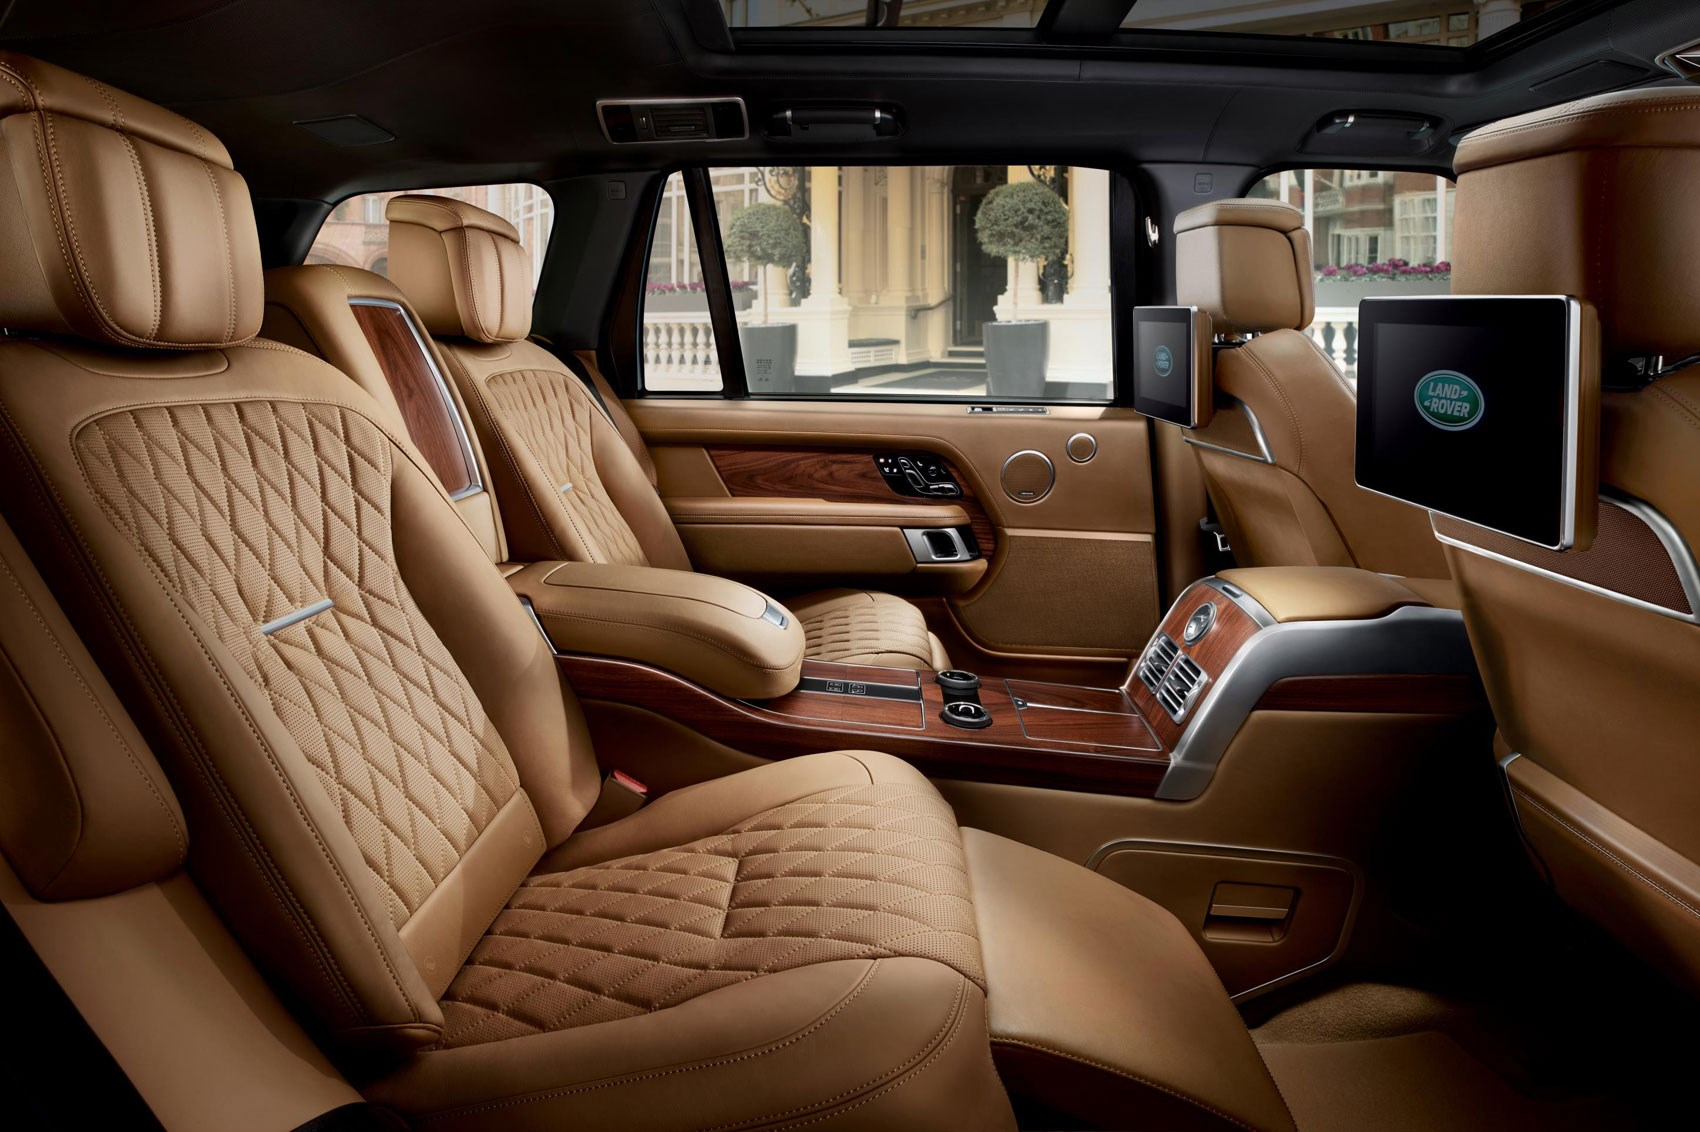 Range Rover SVAutobiography dials up the luxury in Land Rover's flagship SUV